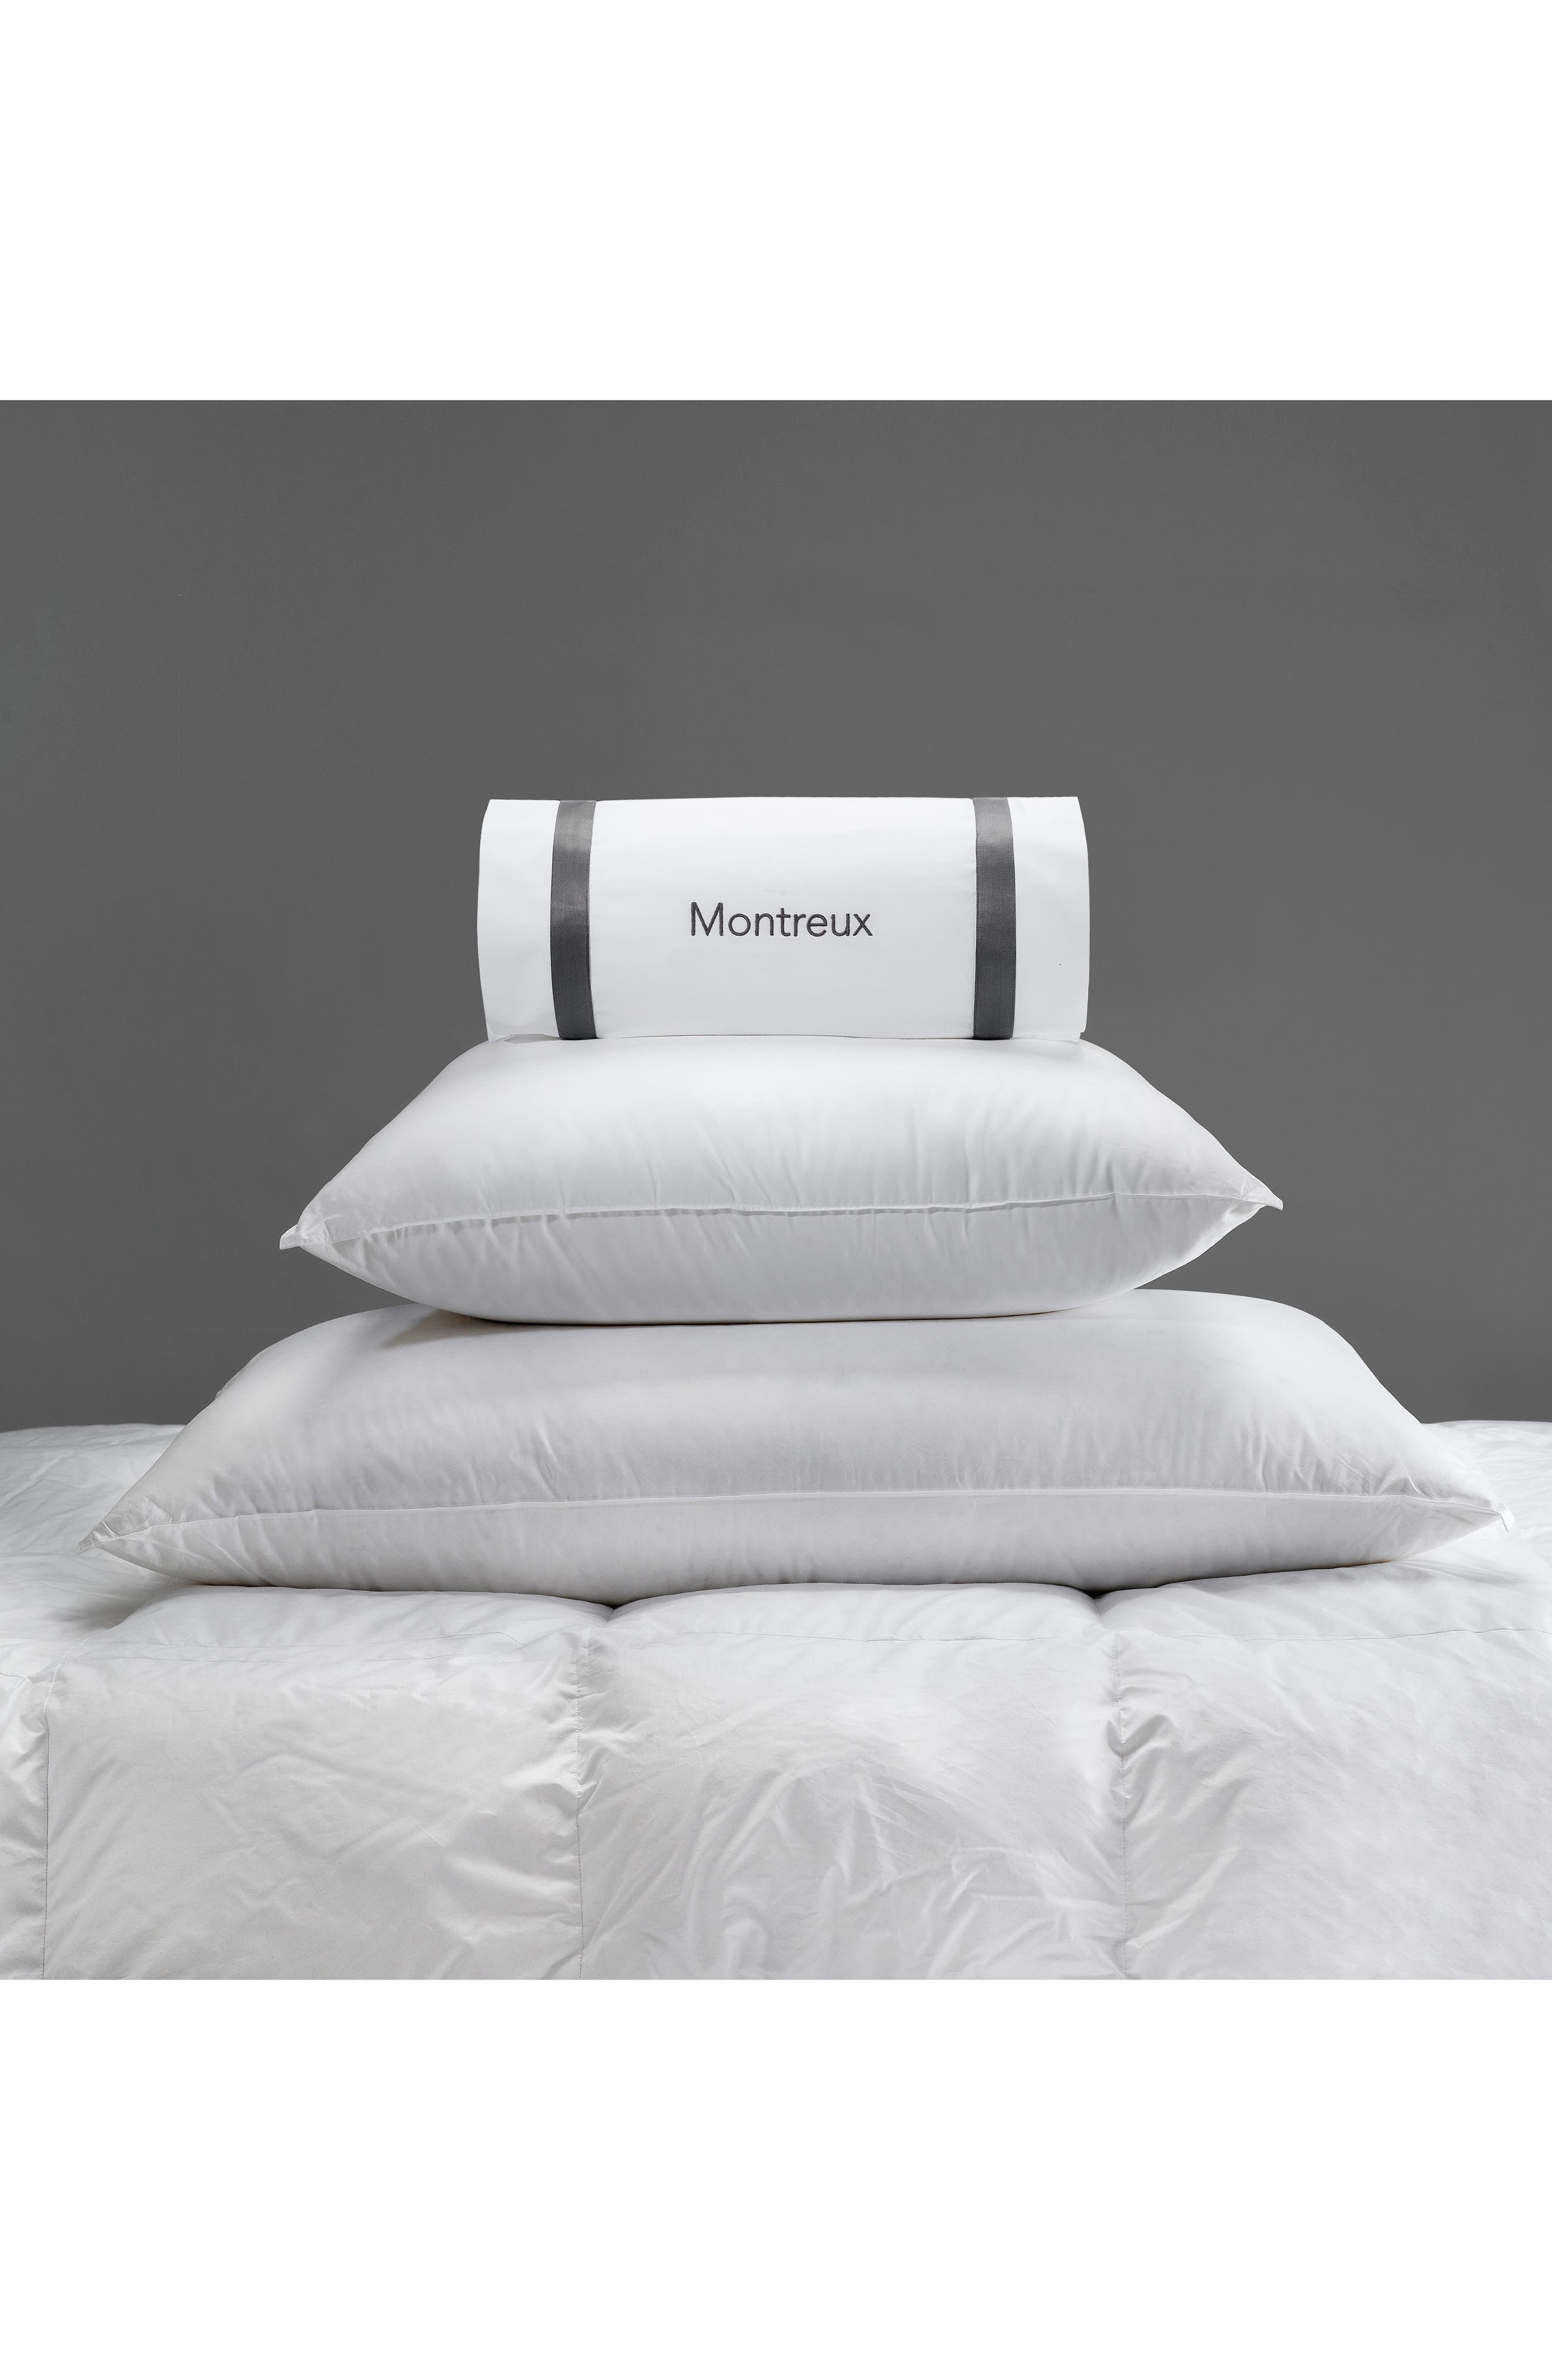 Montreux Three-Chamber 600 Fill Power Down & Feather 280 Thread Count Pillow,                             Alternate thumbnail 2, color,                             White